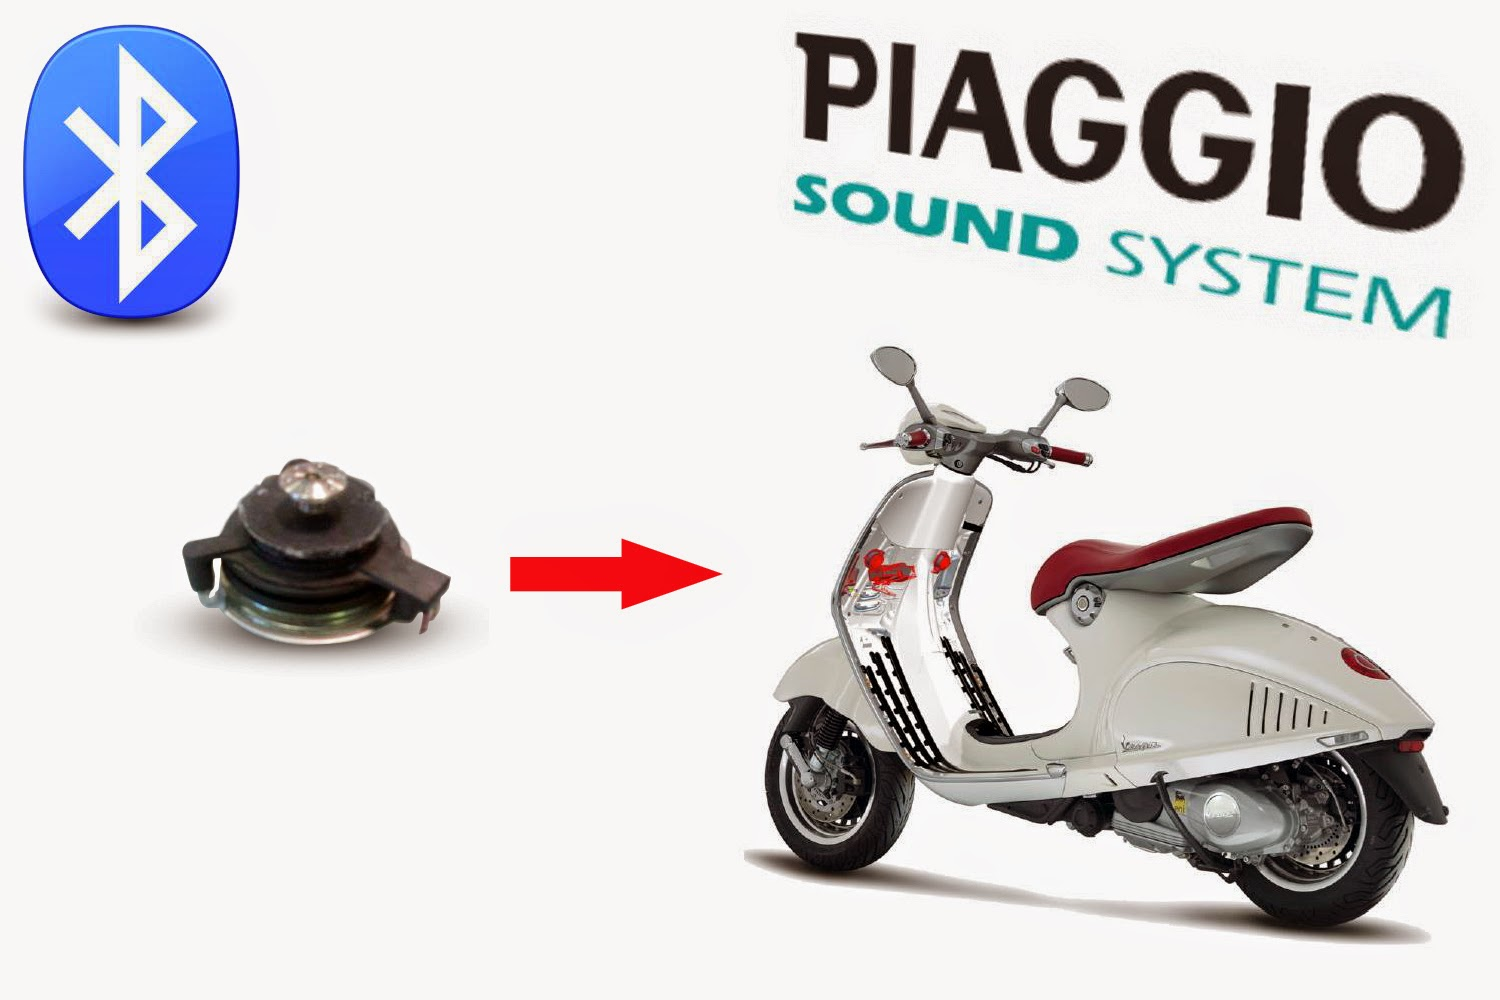 New: Bluetooth speakers for Piaggio scooters